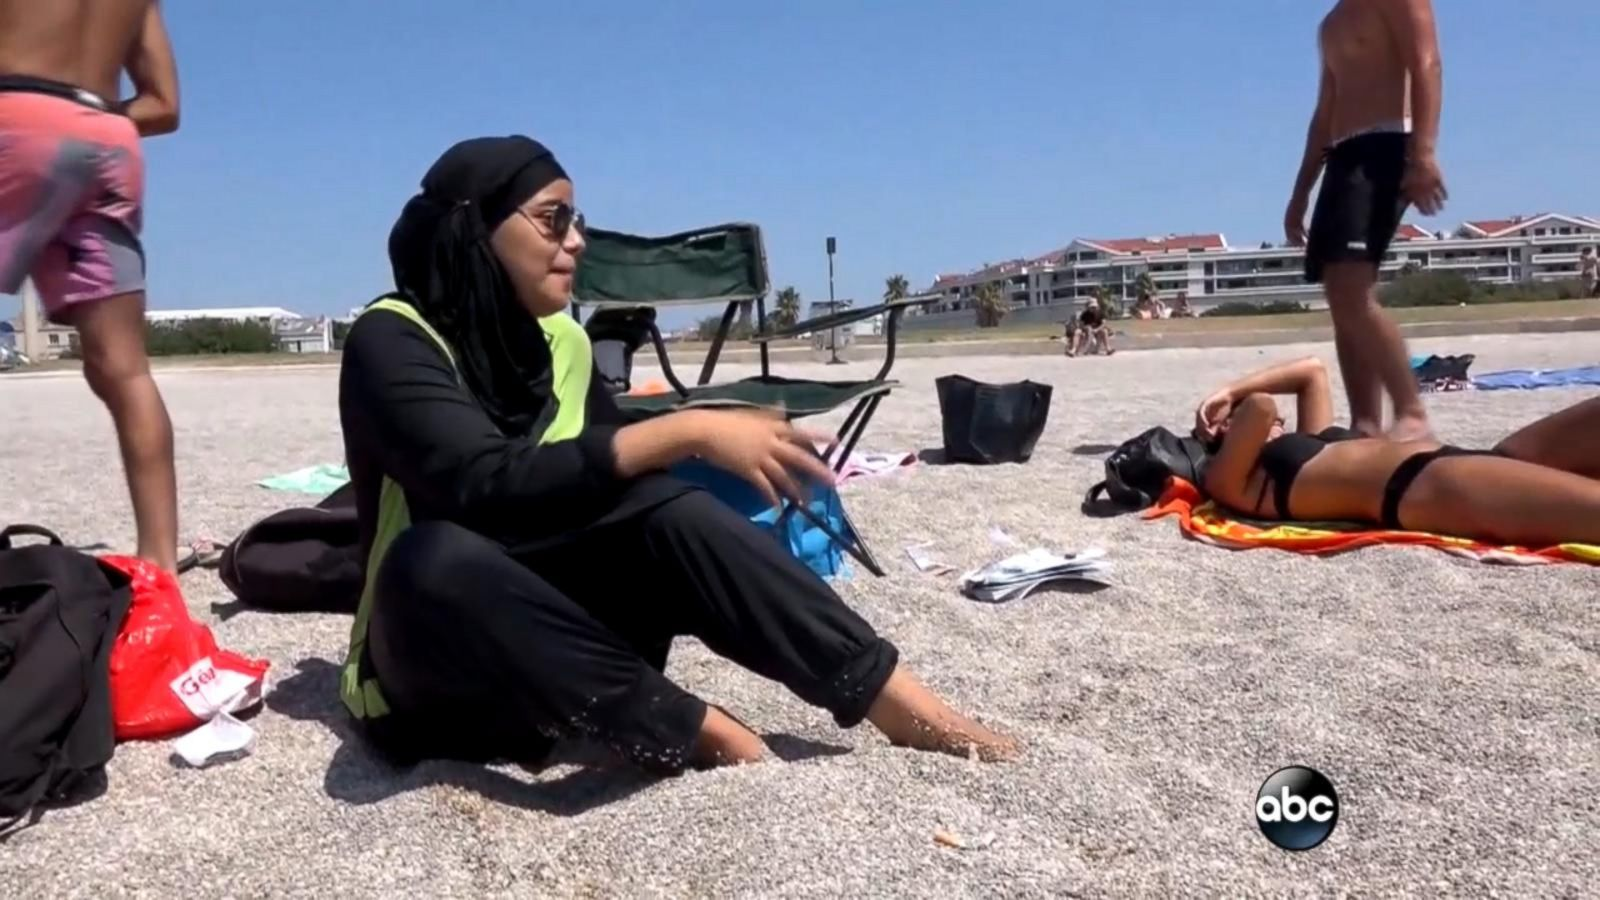 VIDEO: Burkini Bans Cause Controversy Across France